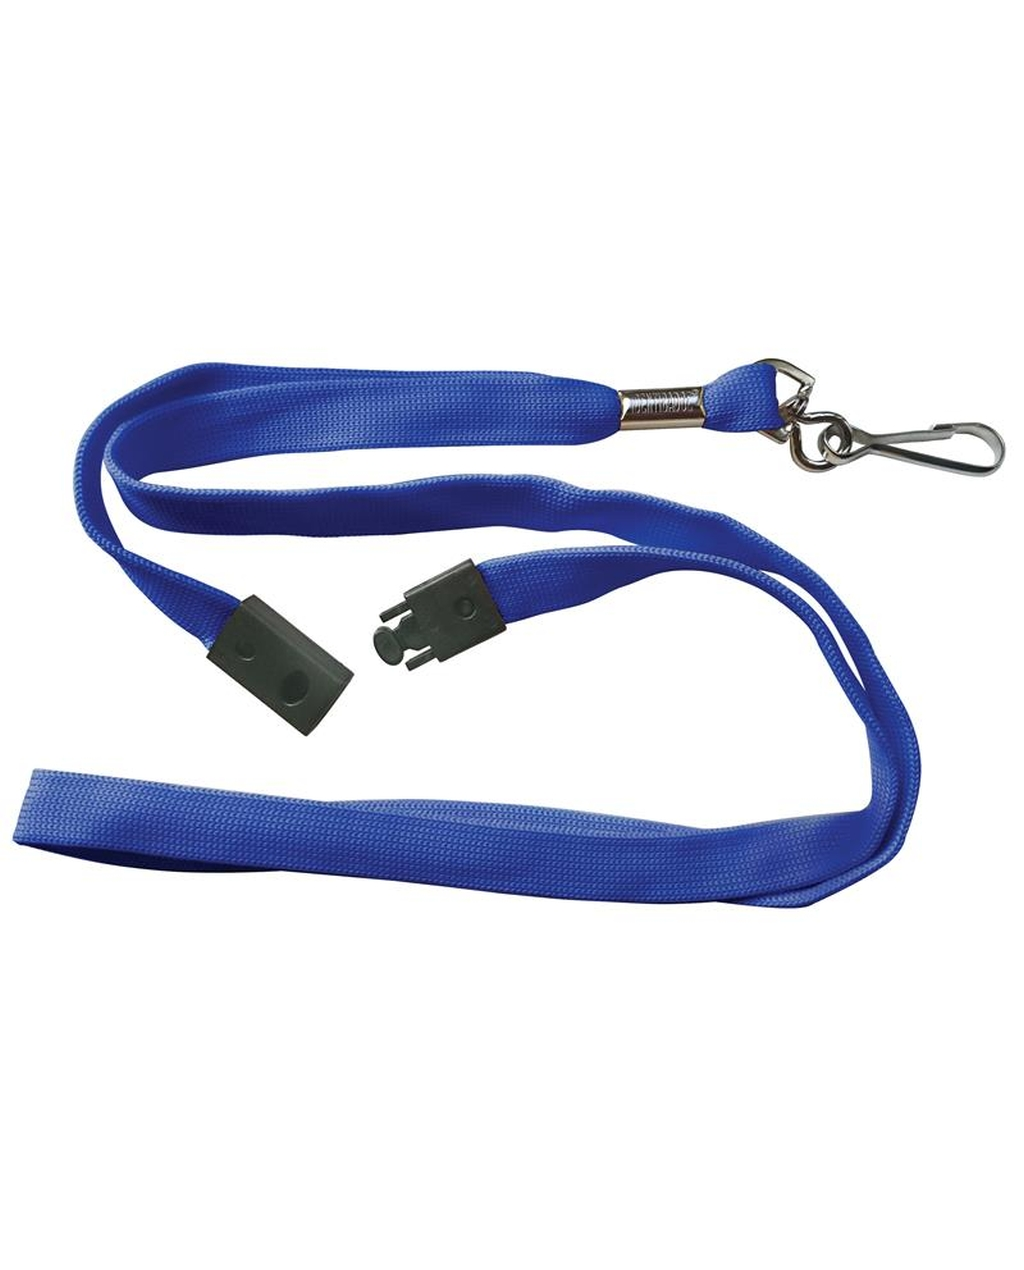 10 Breakaway Lanyards - Blue